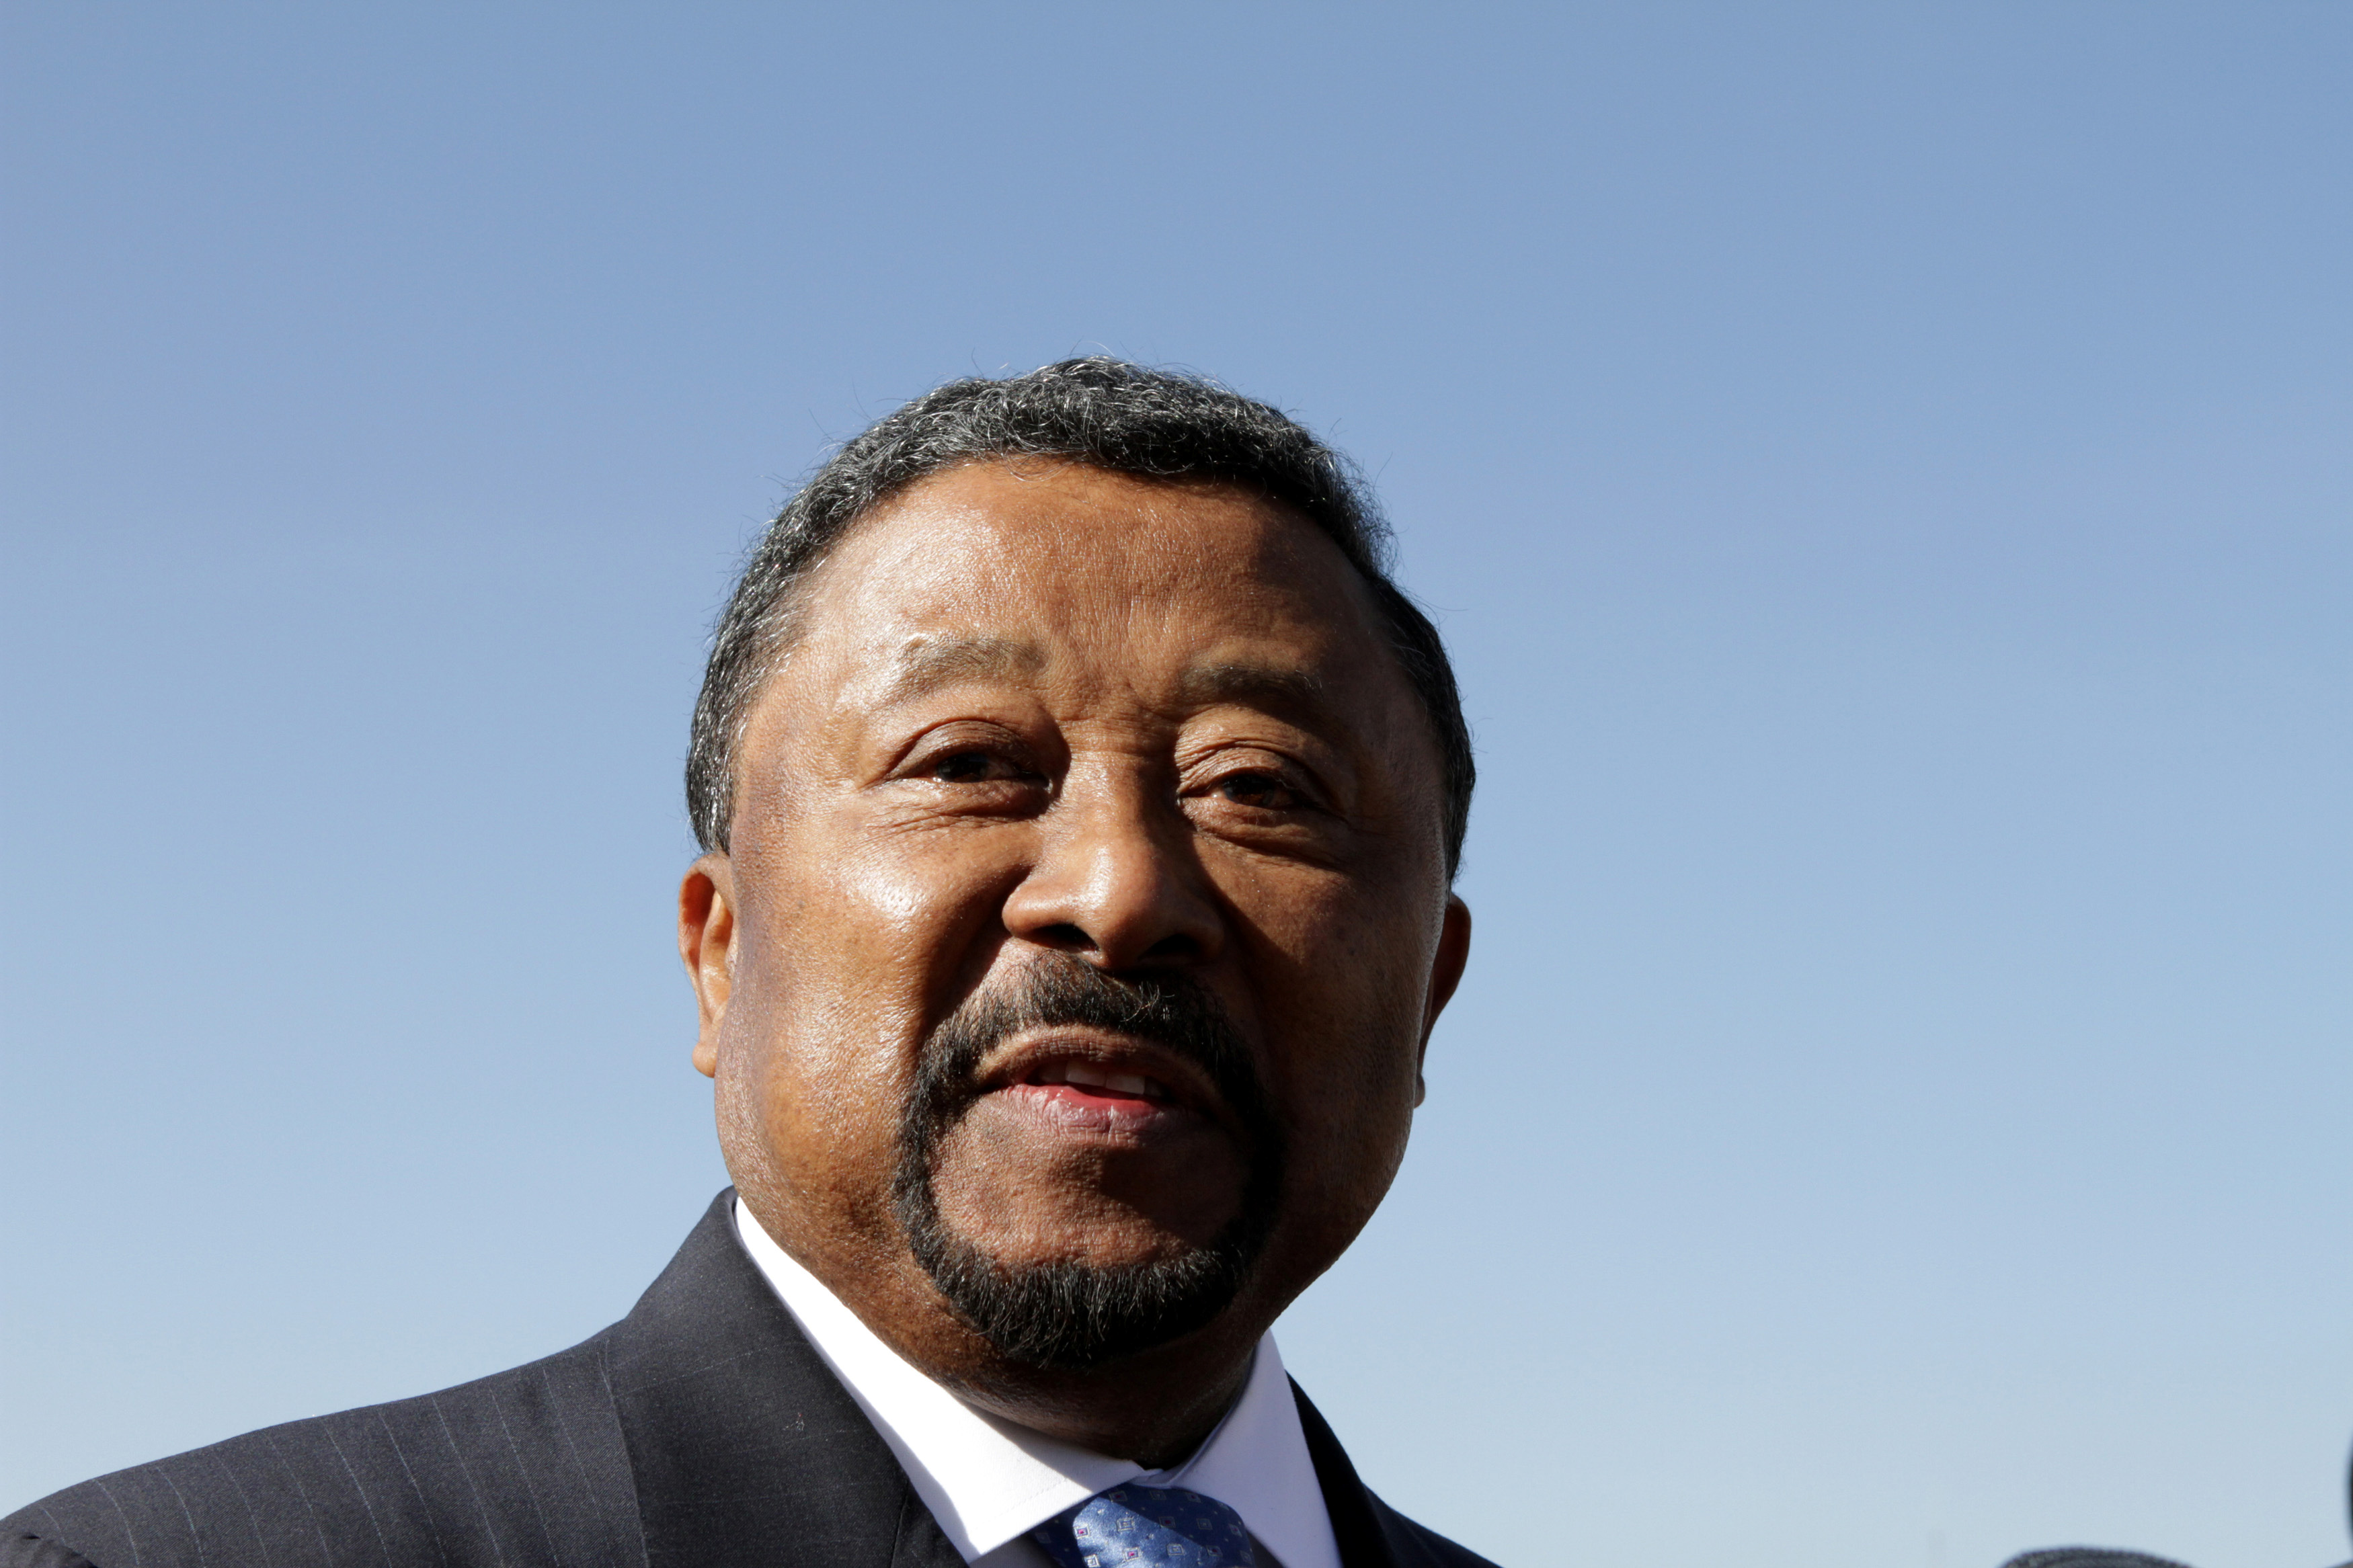 Jean Ping has contested the election results.